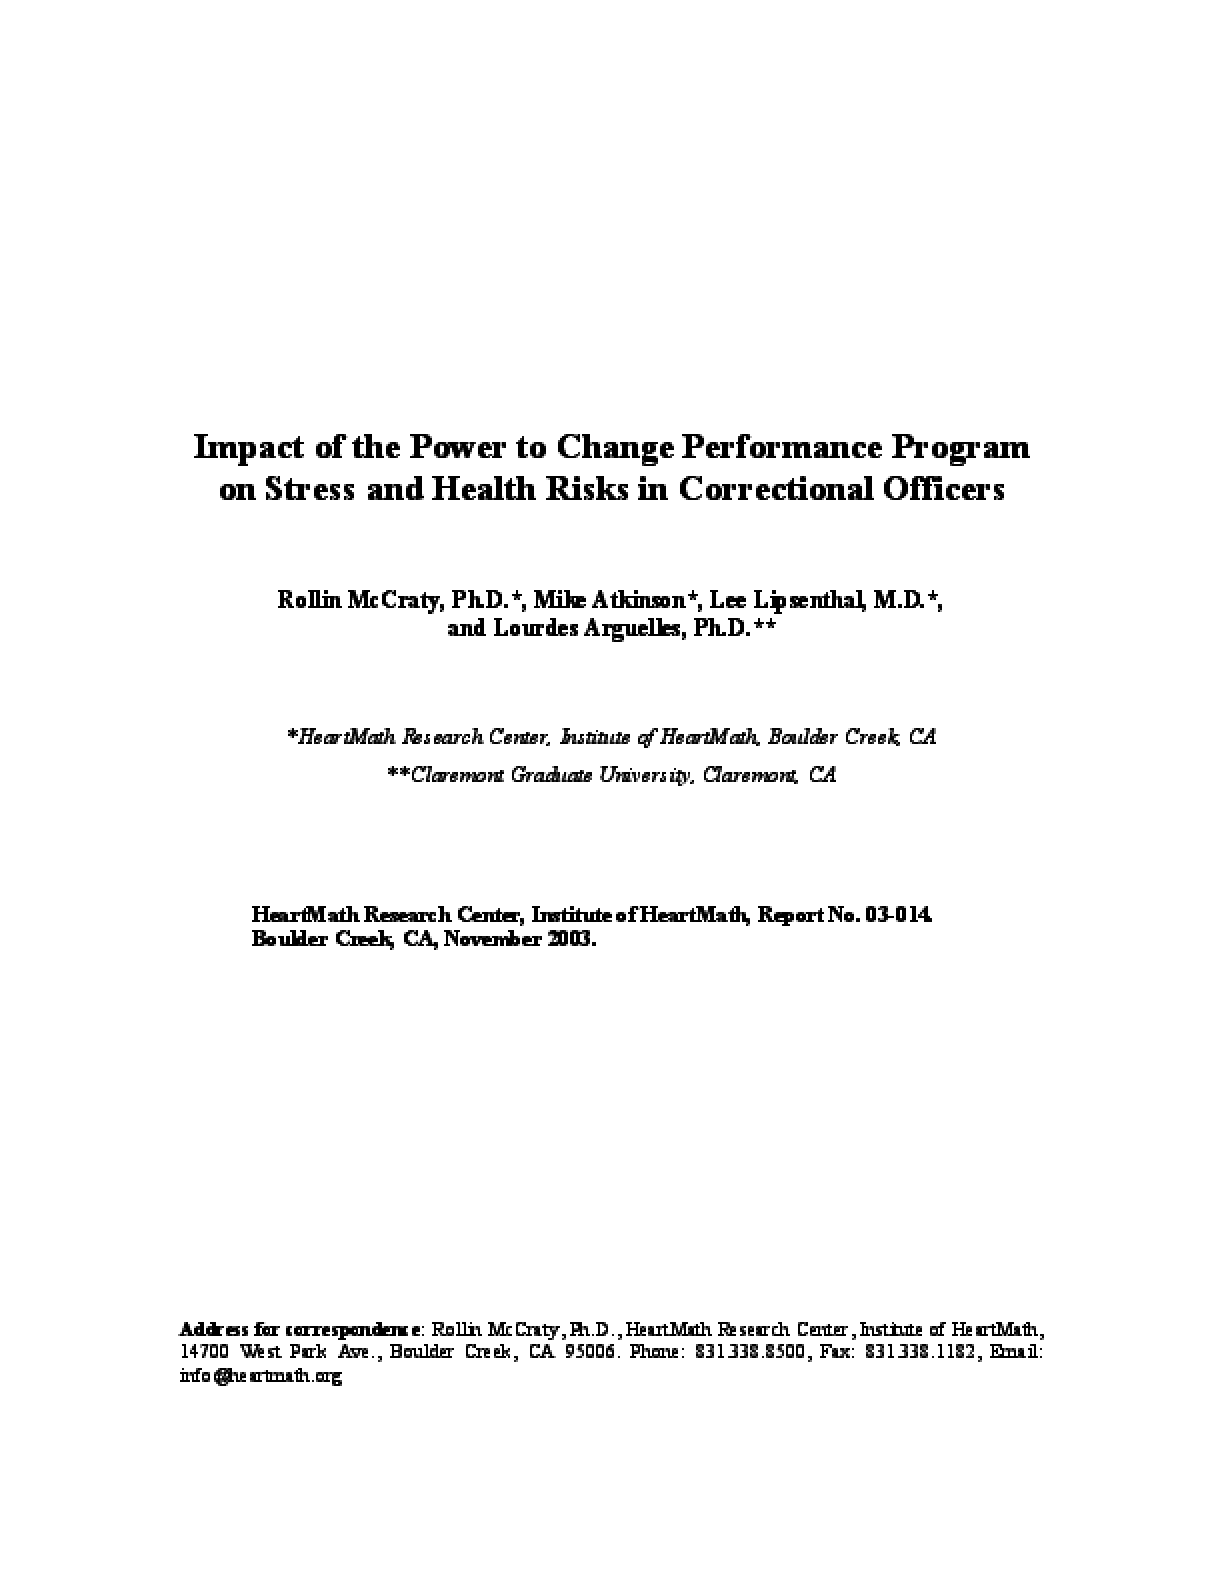 Impact of the Power to Change Performance Program on Stress and Health Risks in Correctional Officers